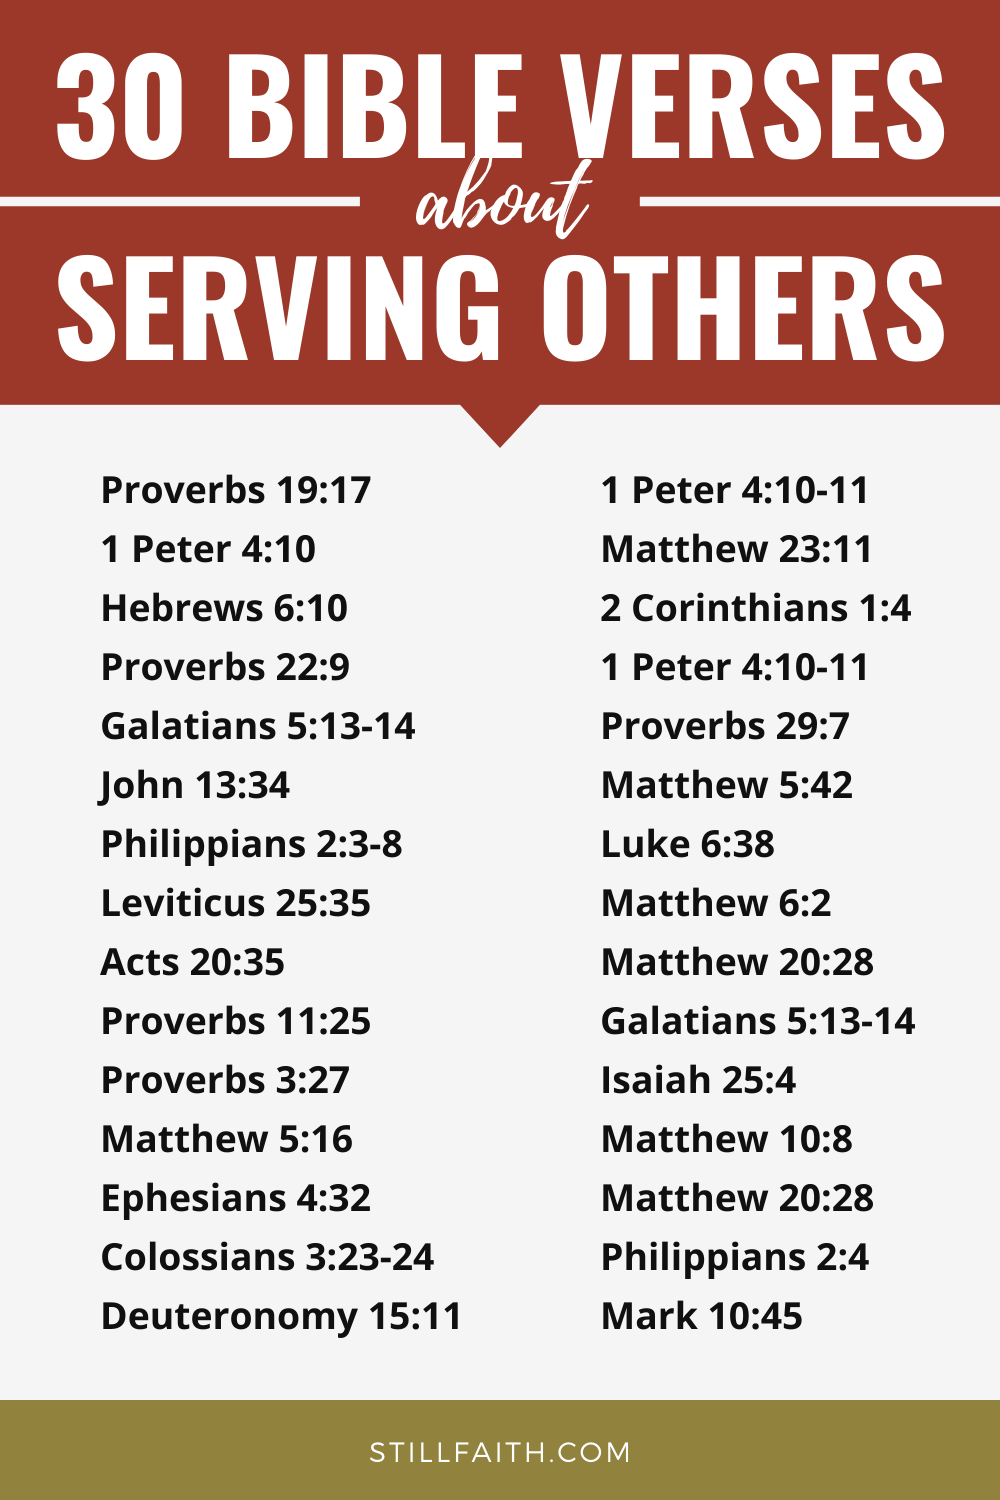 168 Bible Verses about Serving Others